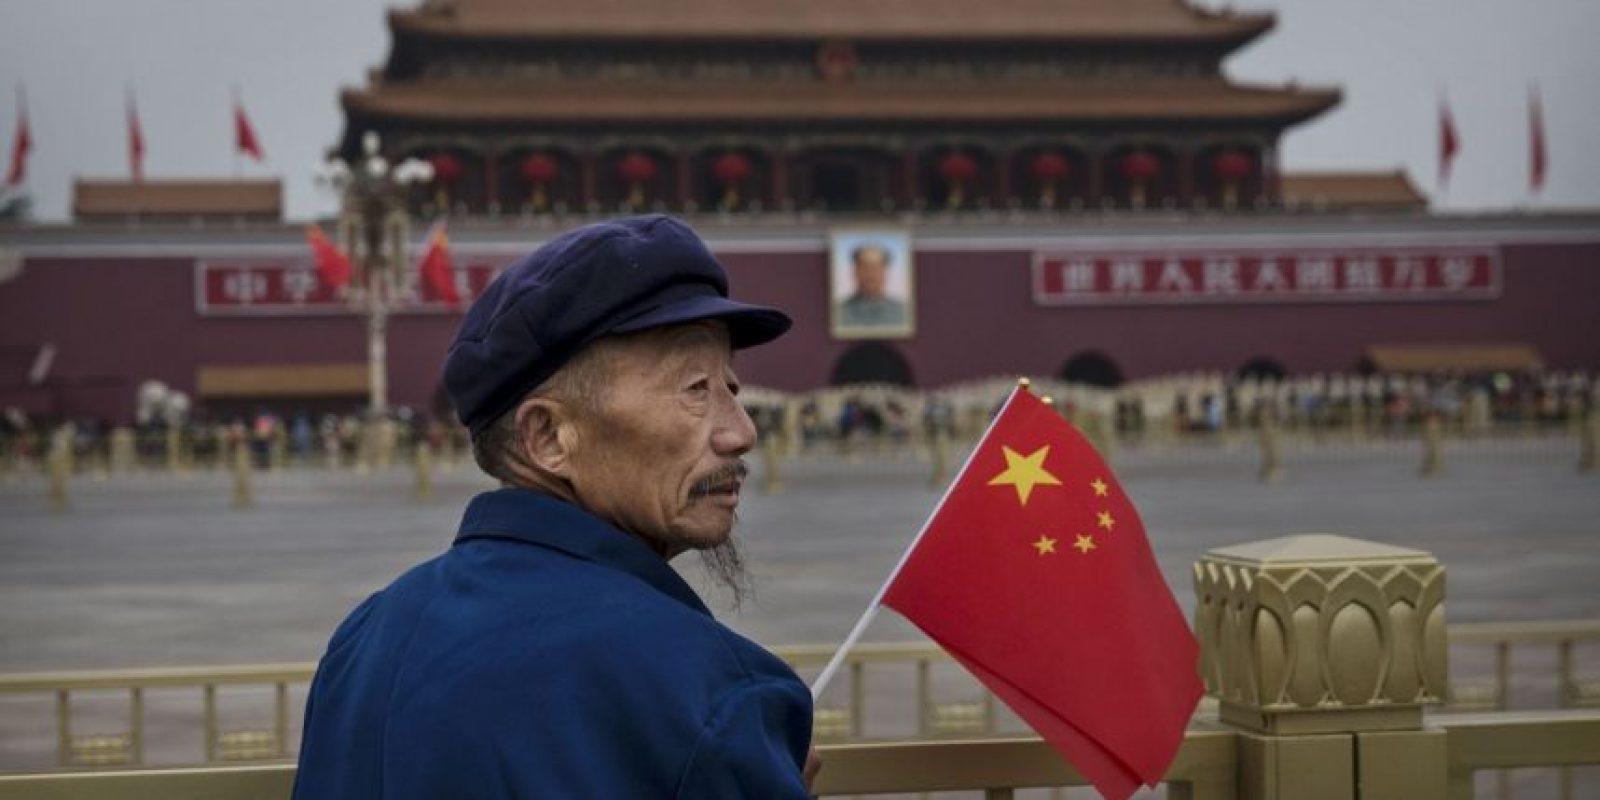 4. China Foto: Getty Images